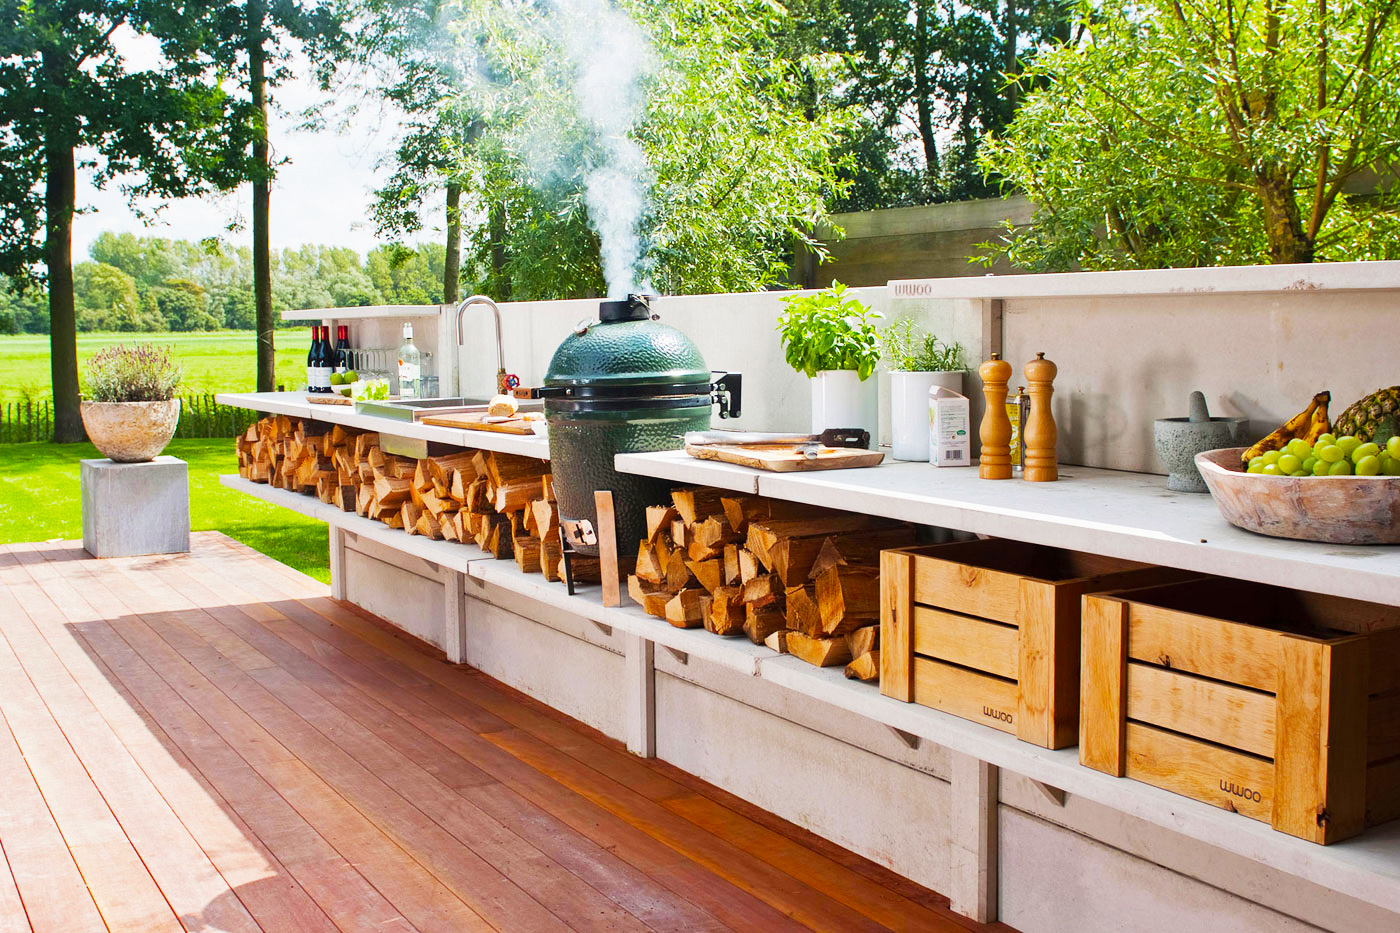 To Build Outdoor Kitchen Can You Build An Outdoor Kitchen On A Deck Cliff Kitchen Build An